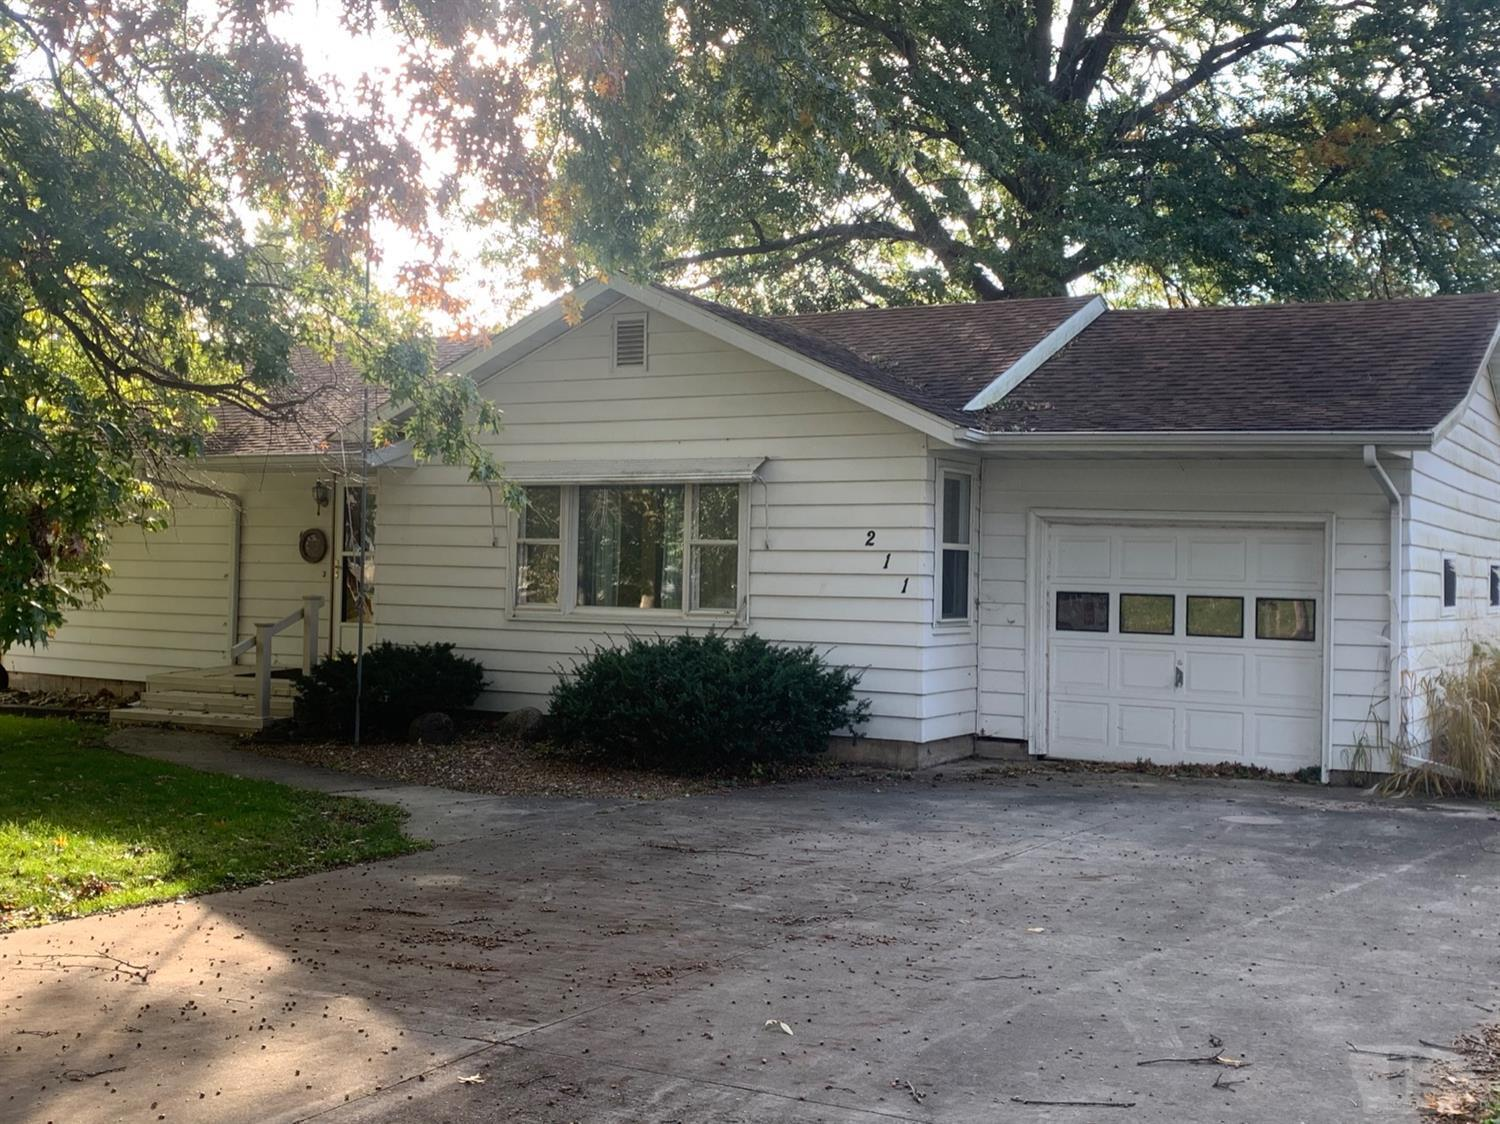 211 Wilson Property Photo - Mount Pleasant, IA real estate listing